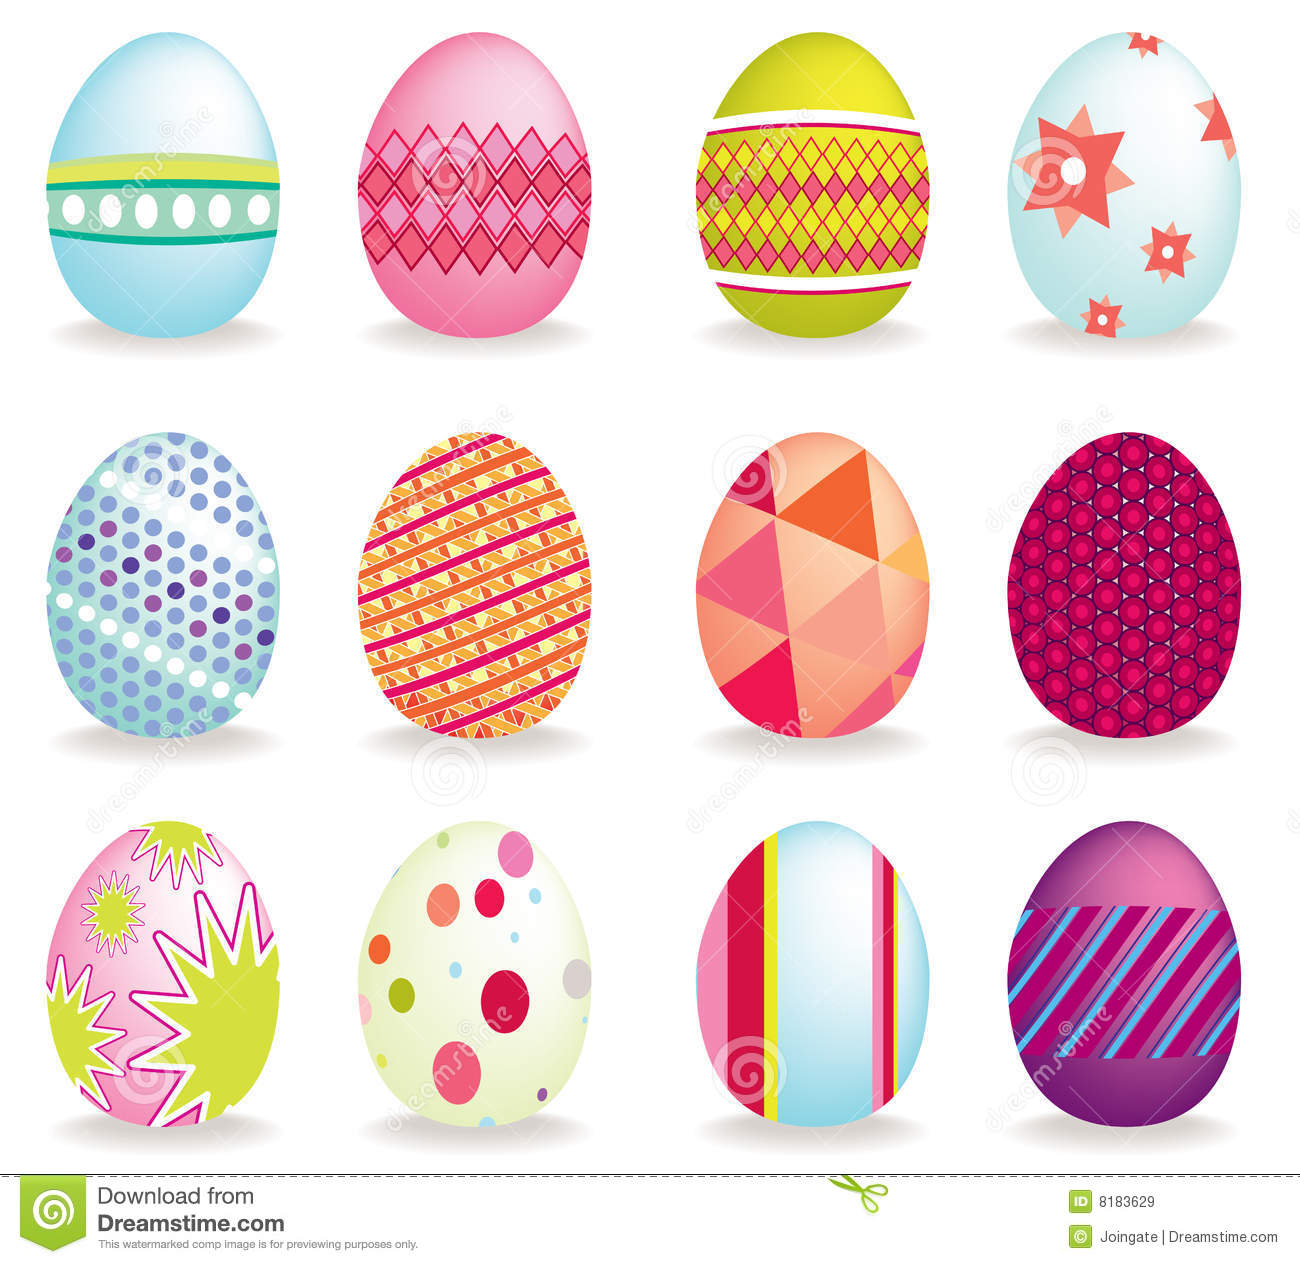 Royalty Free Stock Images Set 12 Icon Easter Eggs Image8183629 on file symbol thumbs up color